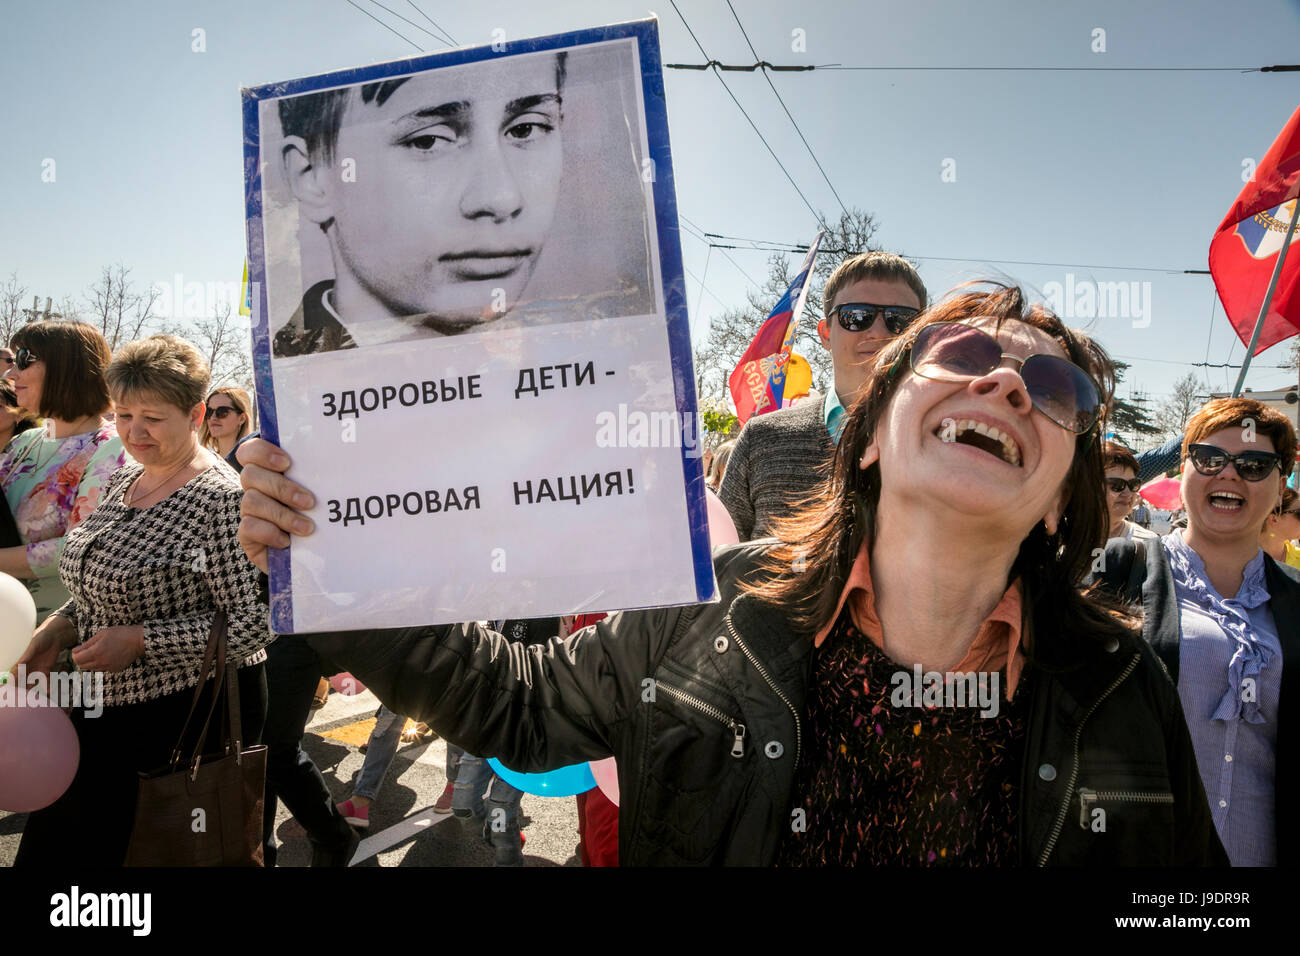 A woman holds a portrait of young Vladimir Putin with the inscription 'Healthy children - healthy nation!' - Stock Image